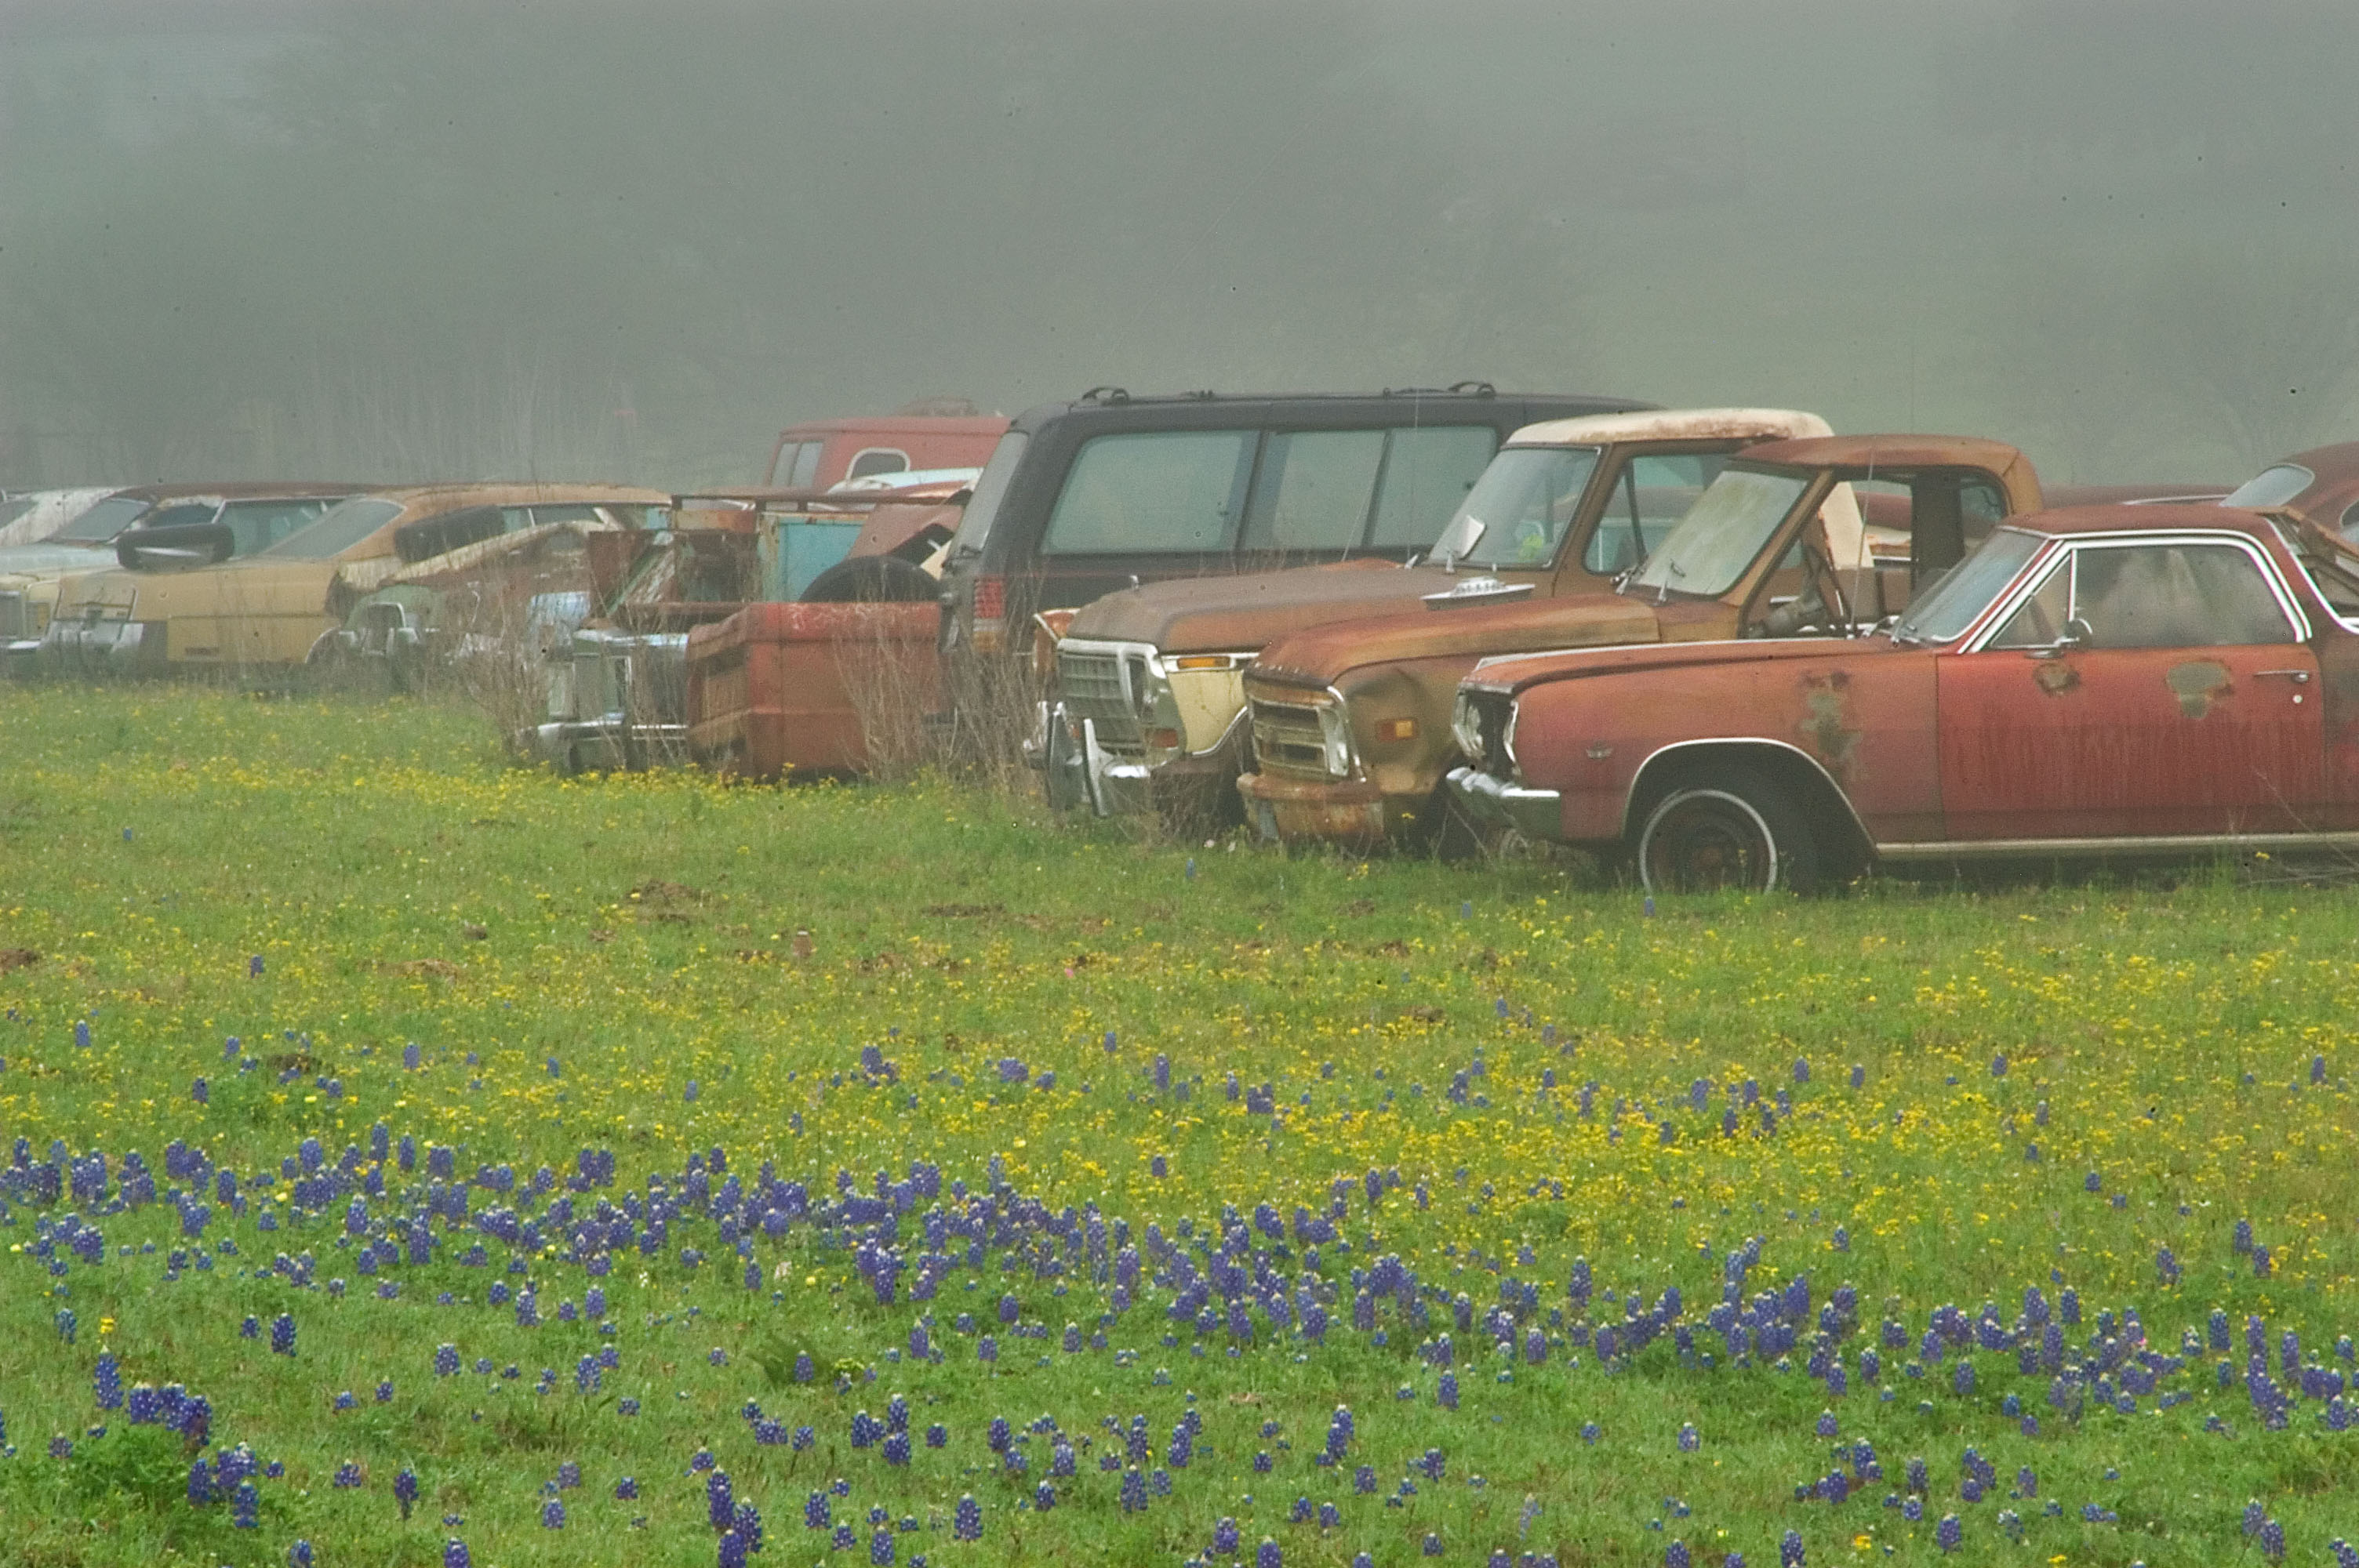 Photo 628 24 Junk Cars In Bluebonnet Flowers View From Near Rd